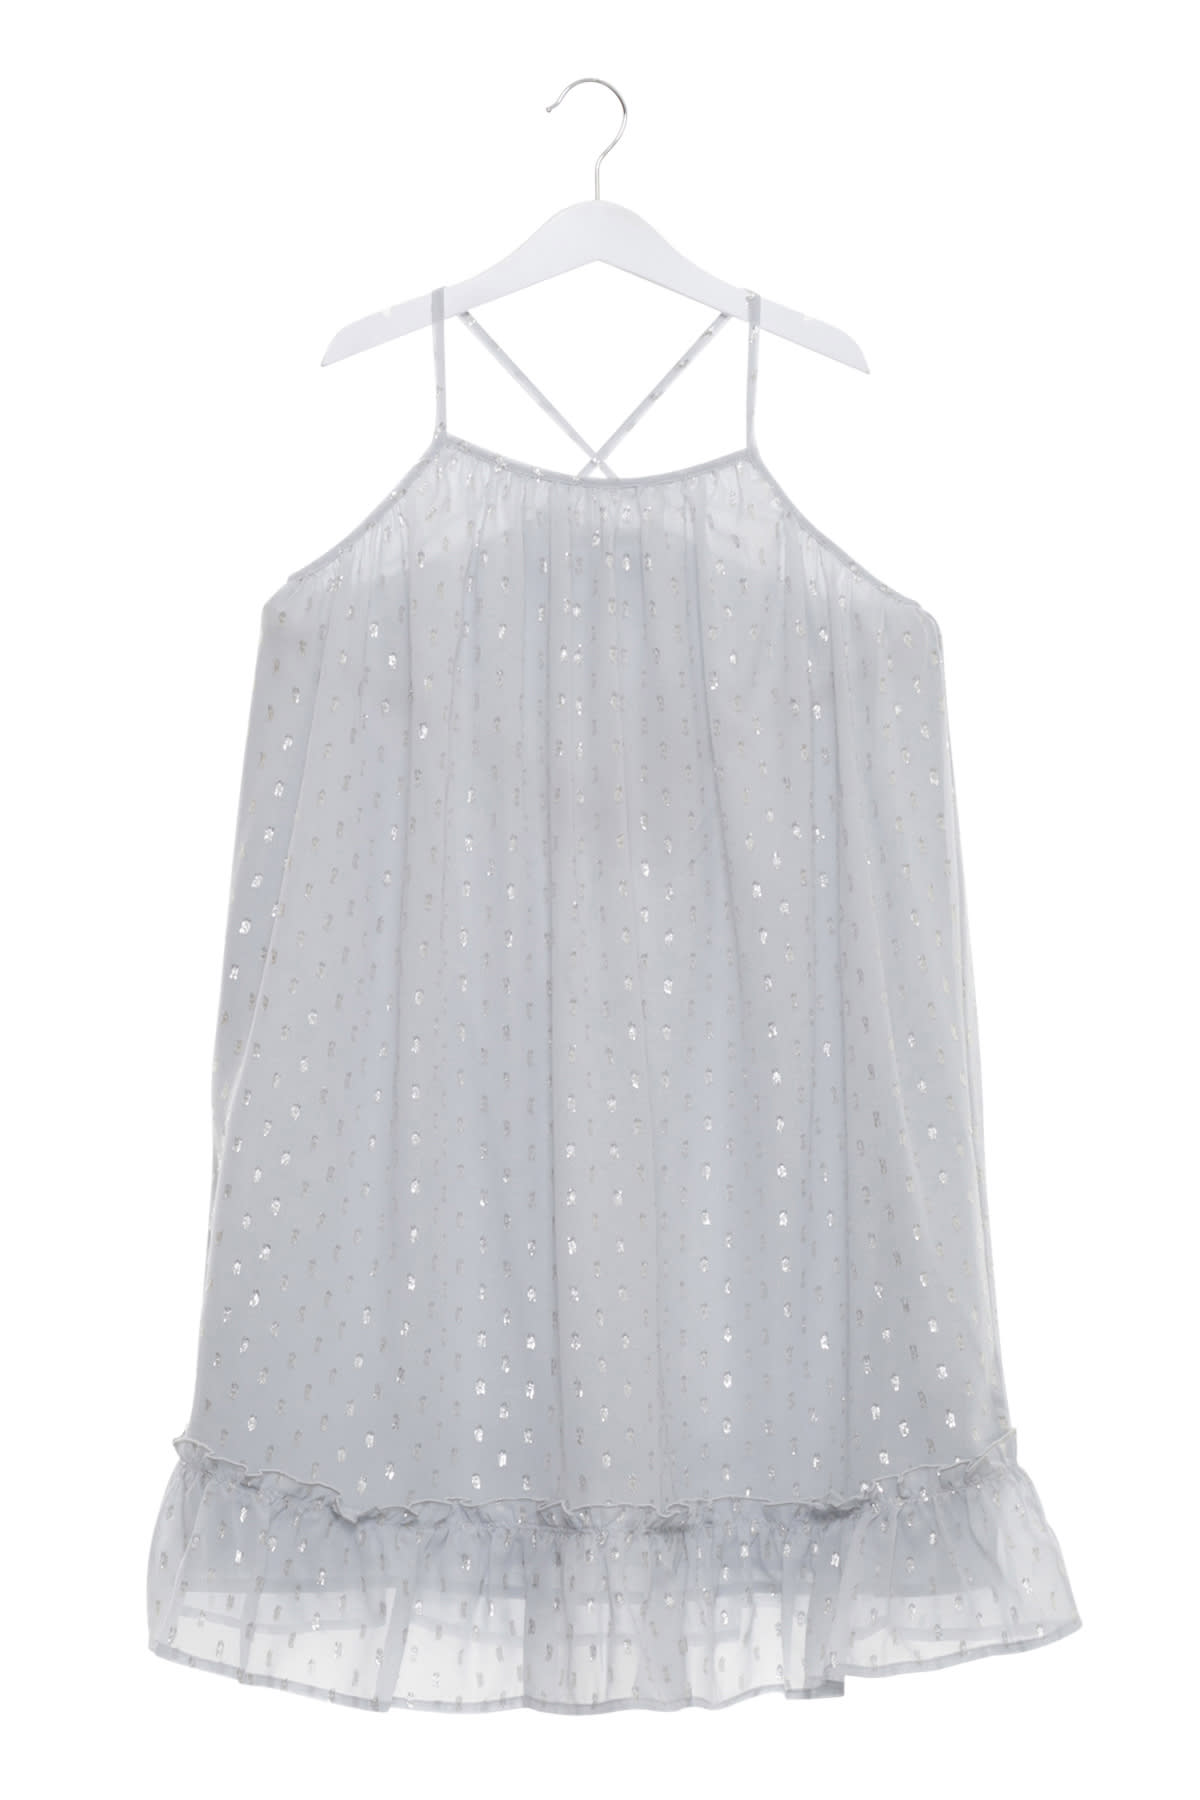 Stella McCartney Flocked Tulle Dress